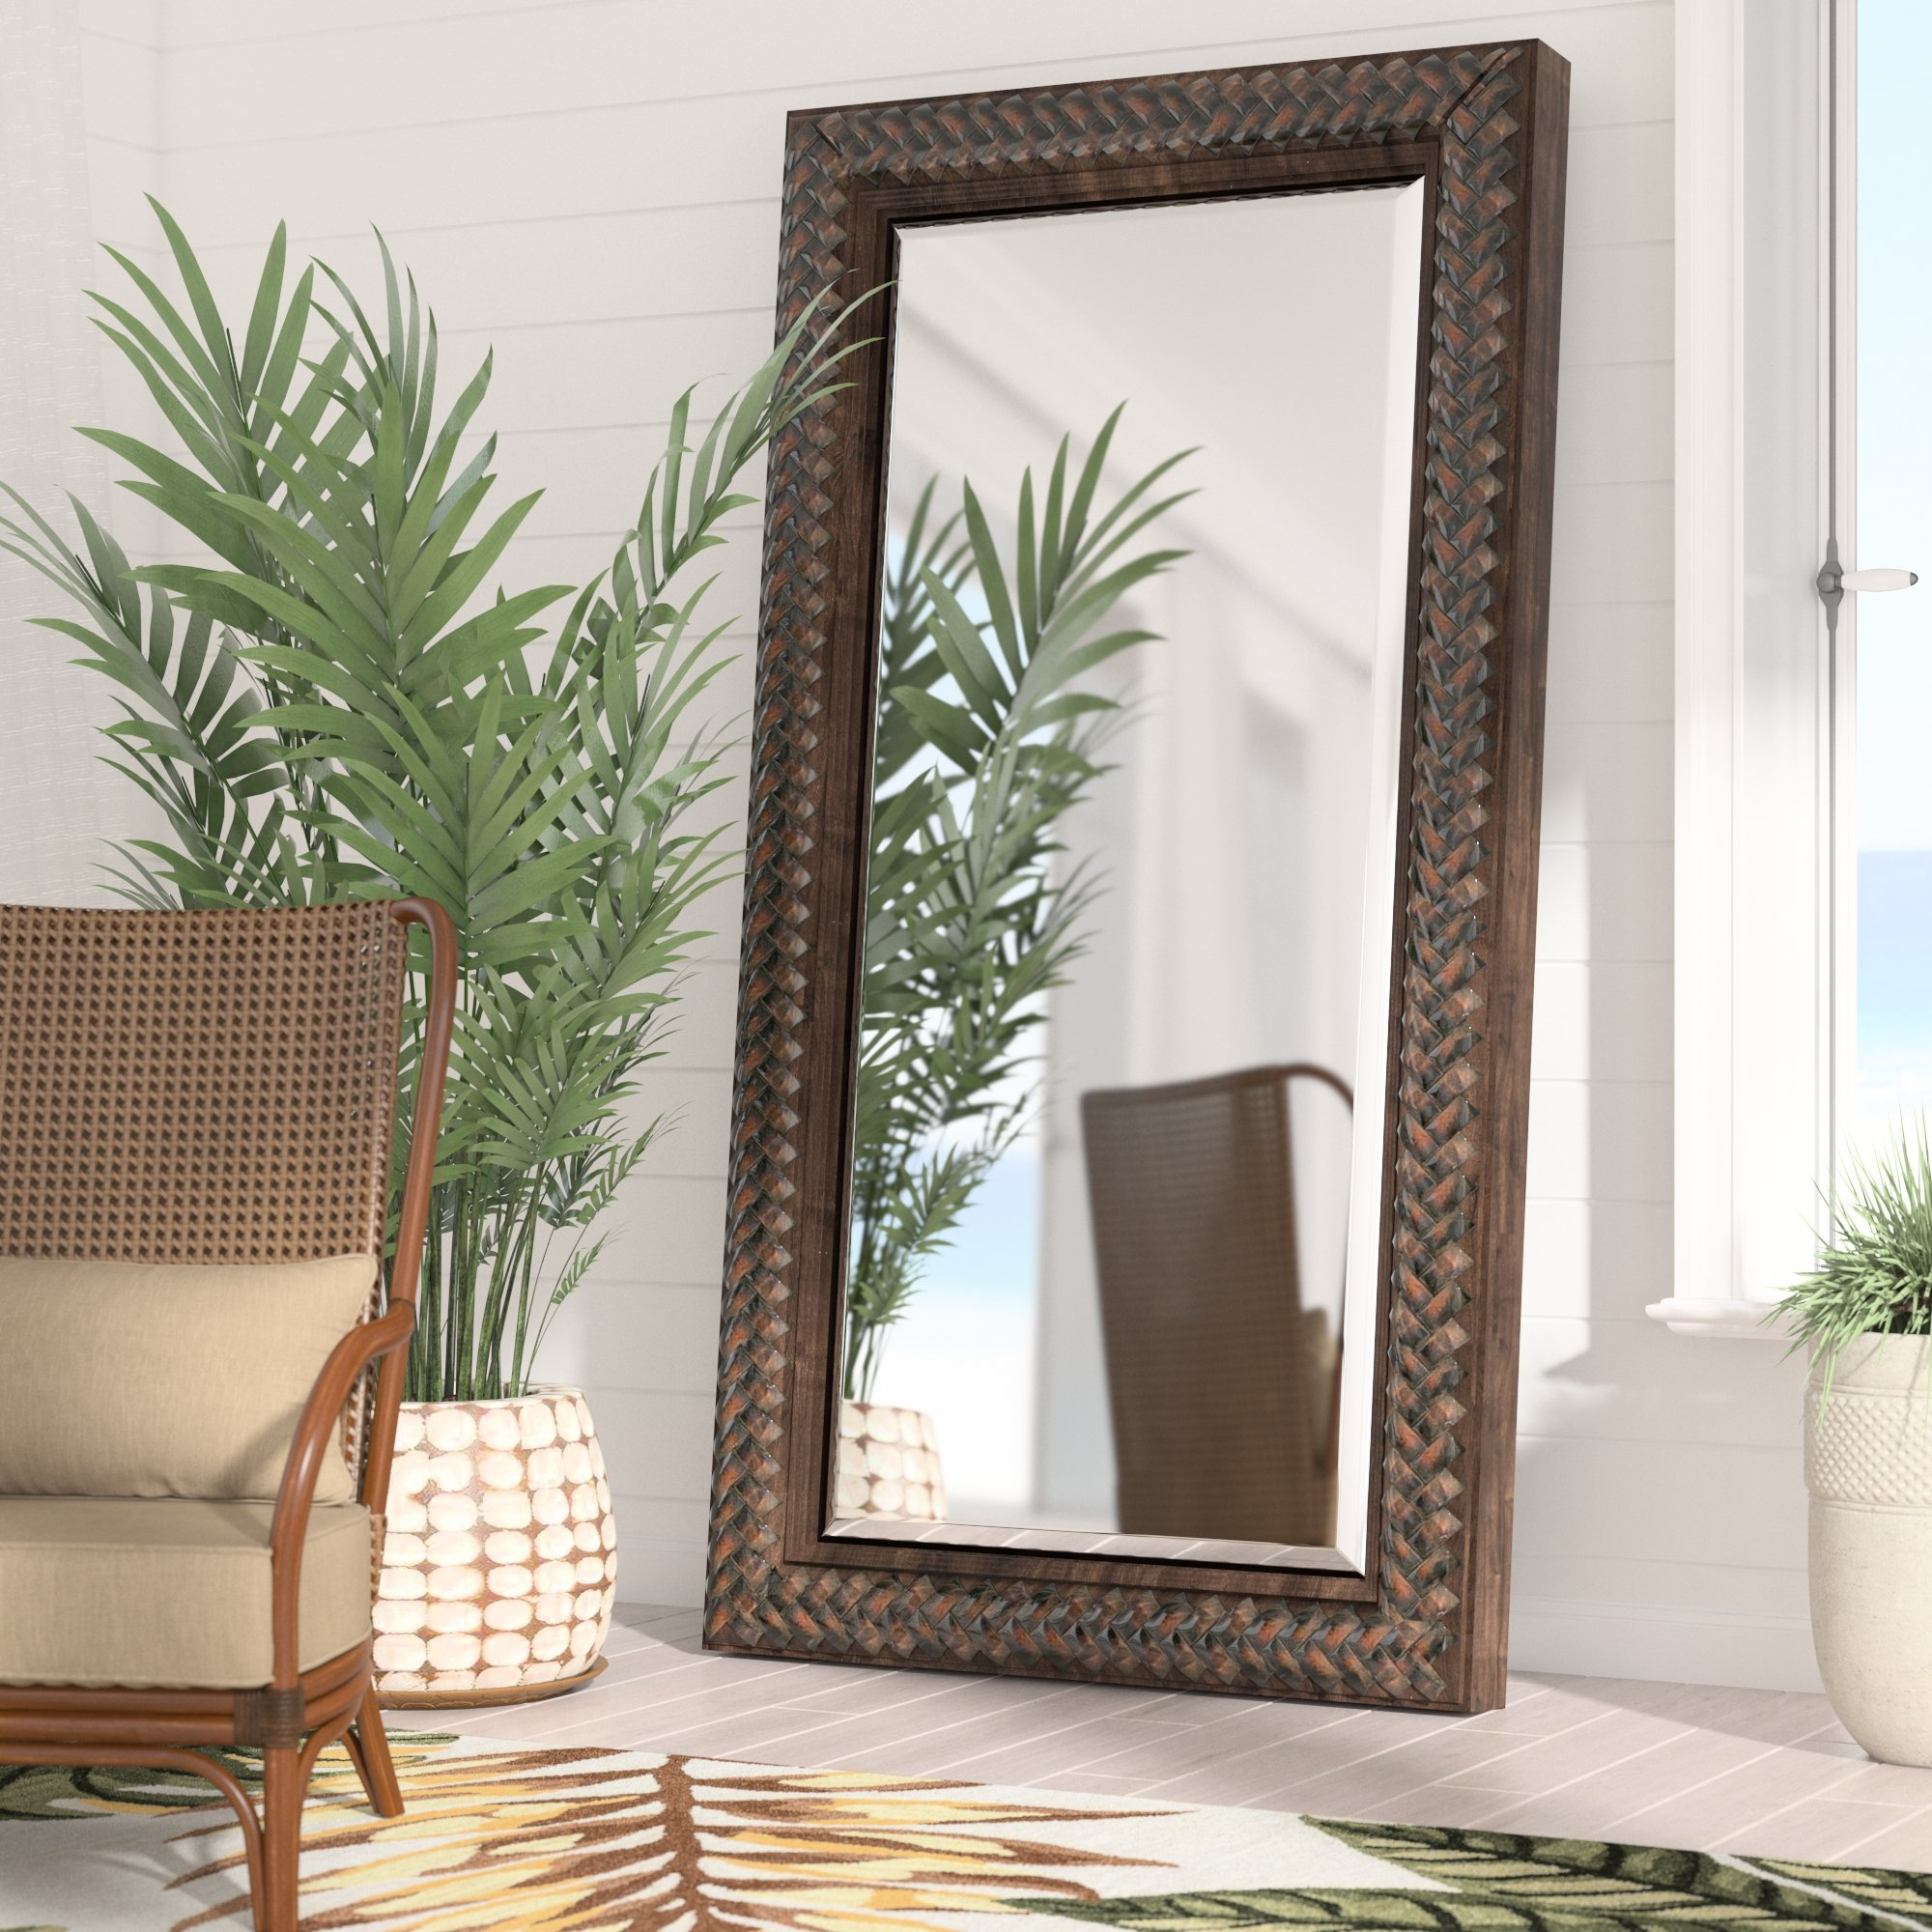 Farmhouse & Rustic Floor Mirrors | Birch Lane With Regard To Handcrafted Farmhouse Full Length Mirrors (Image 7 of 20)